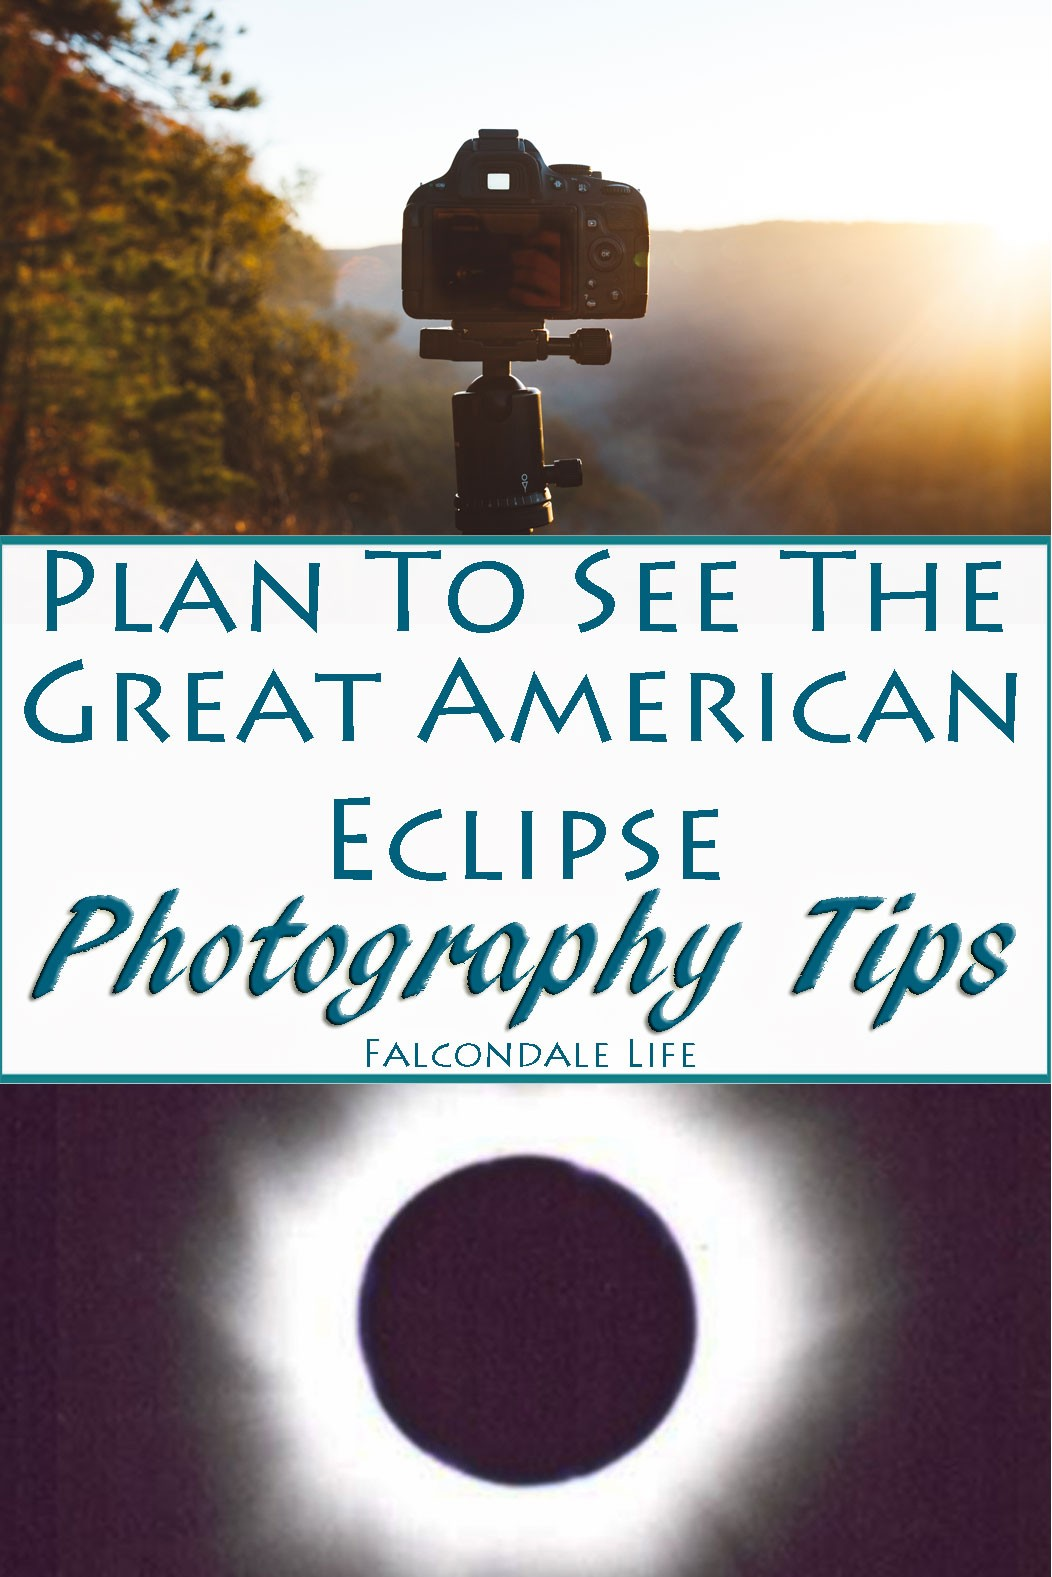 Plan to See the Great American Eclipse – With Photography Tips